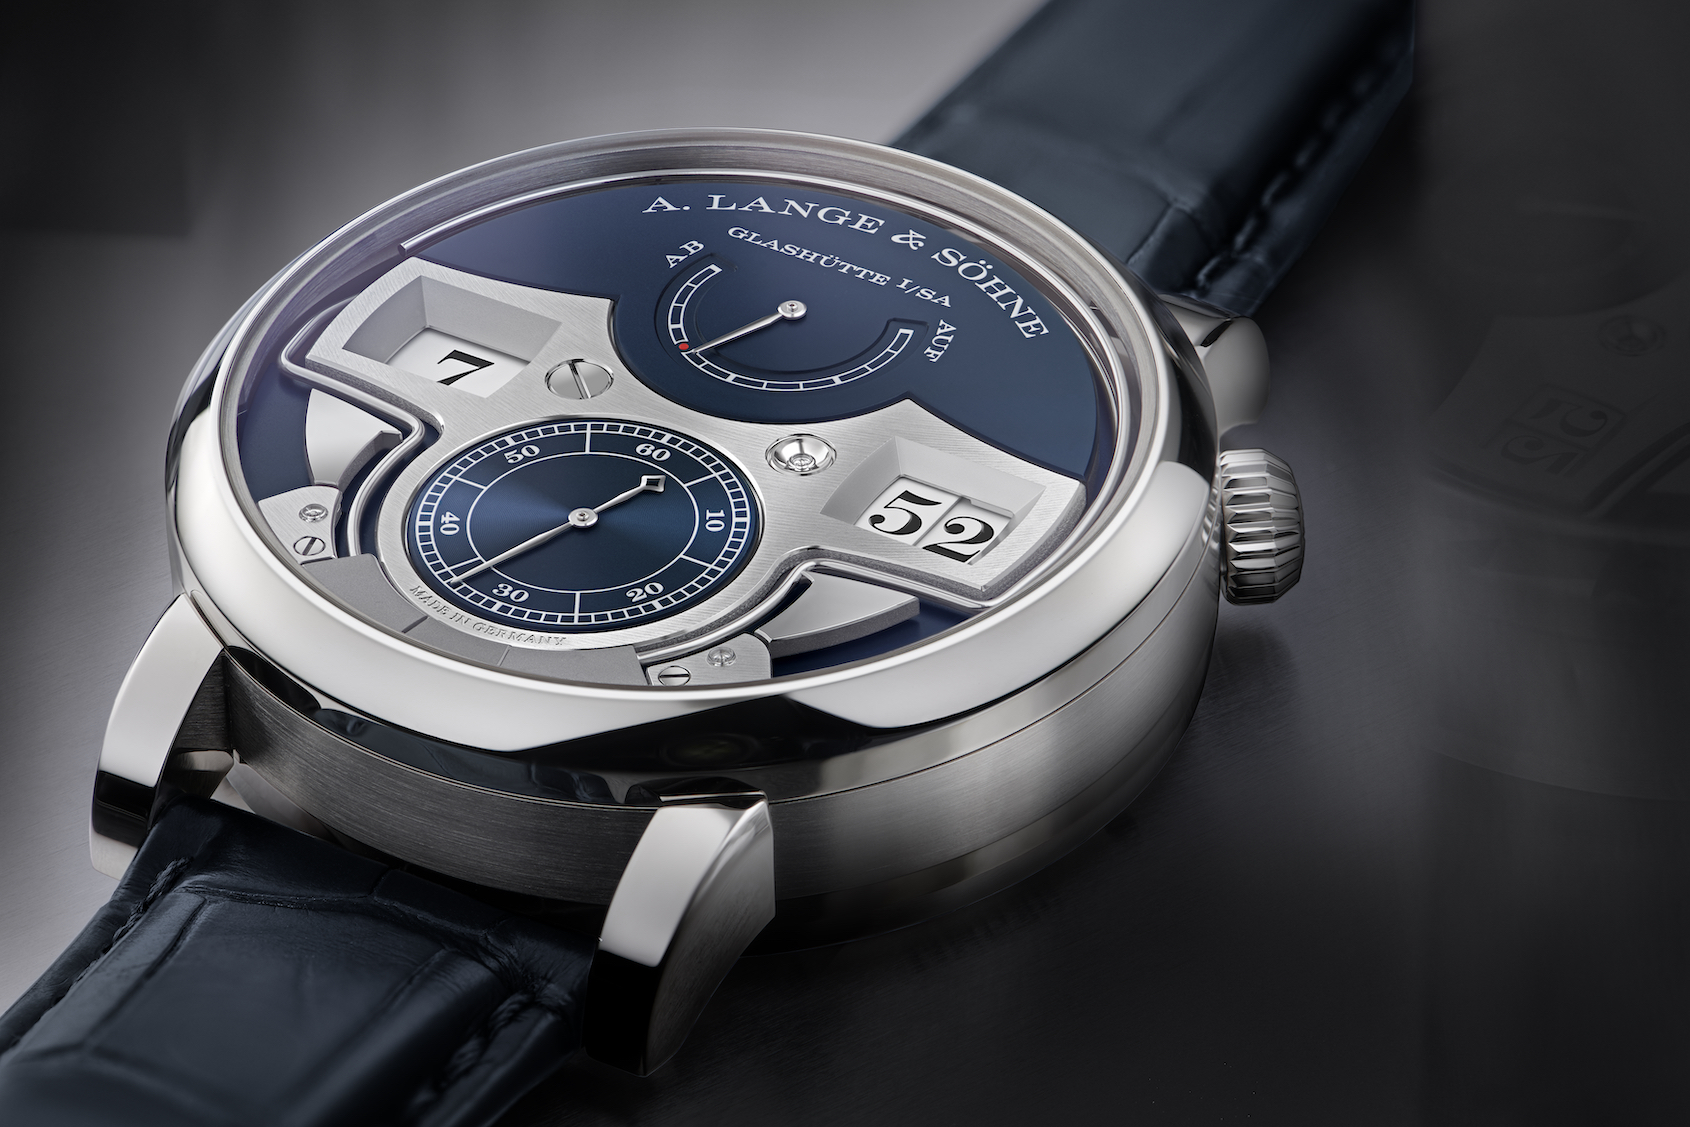 The Top 5 Luxury Timepieces Of 2020 (So Far!) luxury timepiece The Top 5 Luxury Timepieces Of 2020 (So Far!) The Top 5 Luxury Timepieces Of 2020 So Far 4